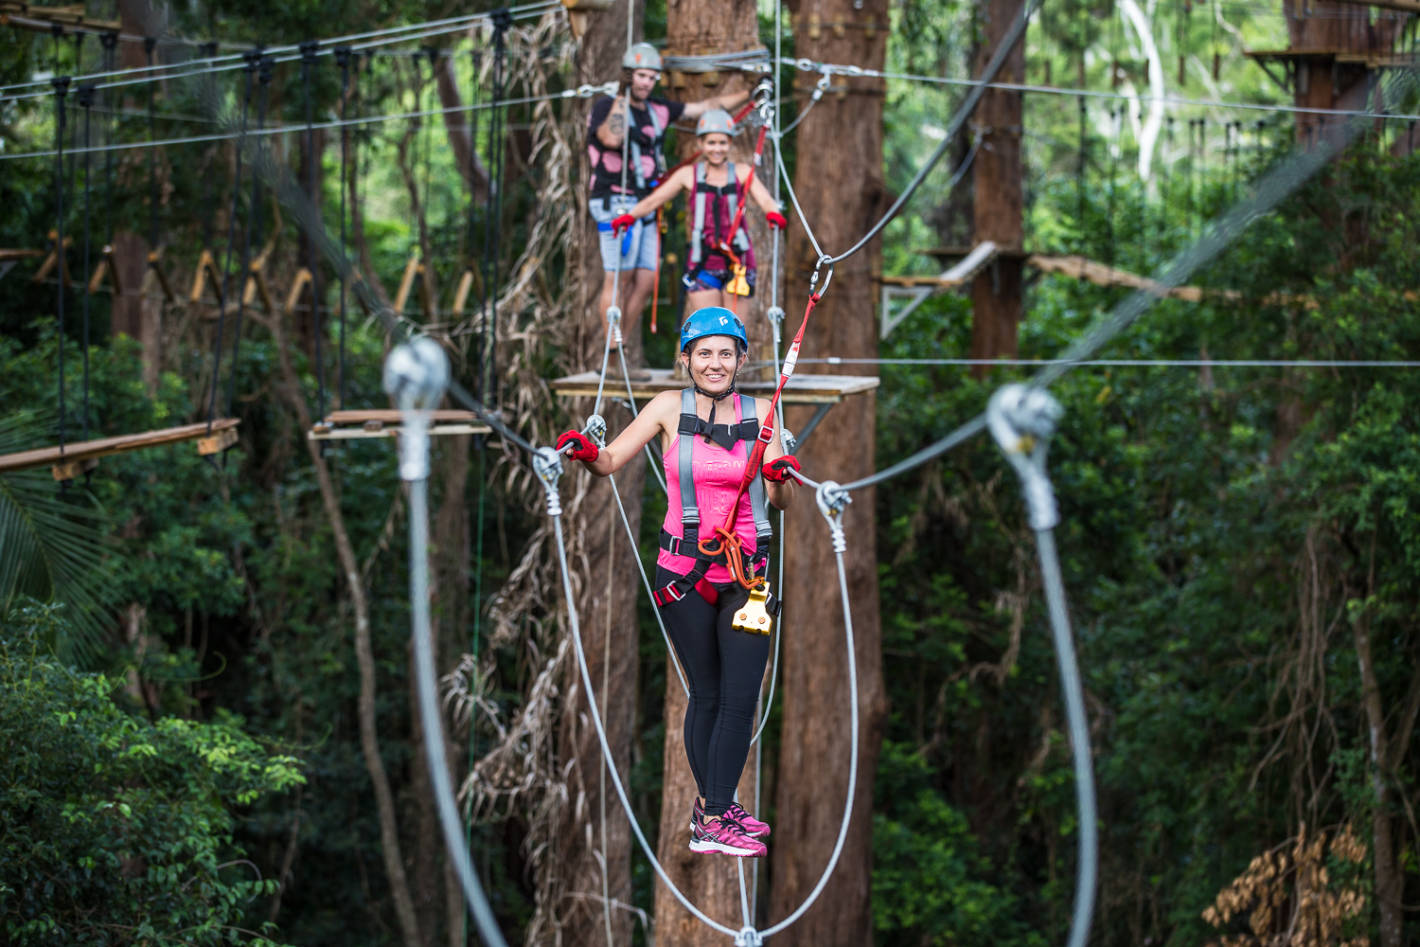 The weekend you need in Nambour this July